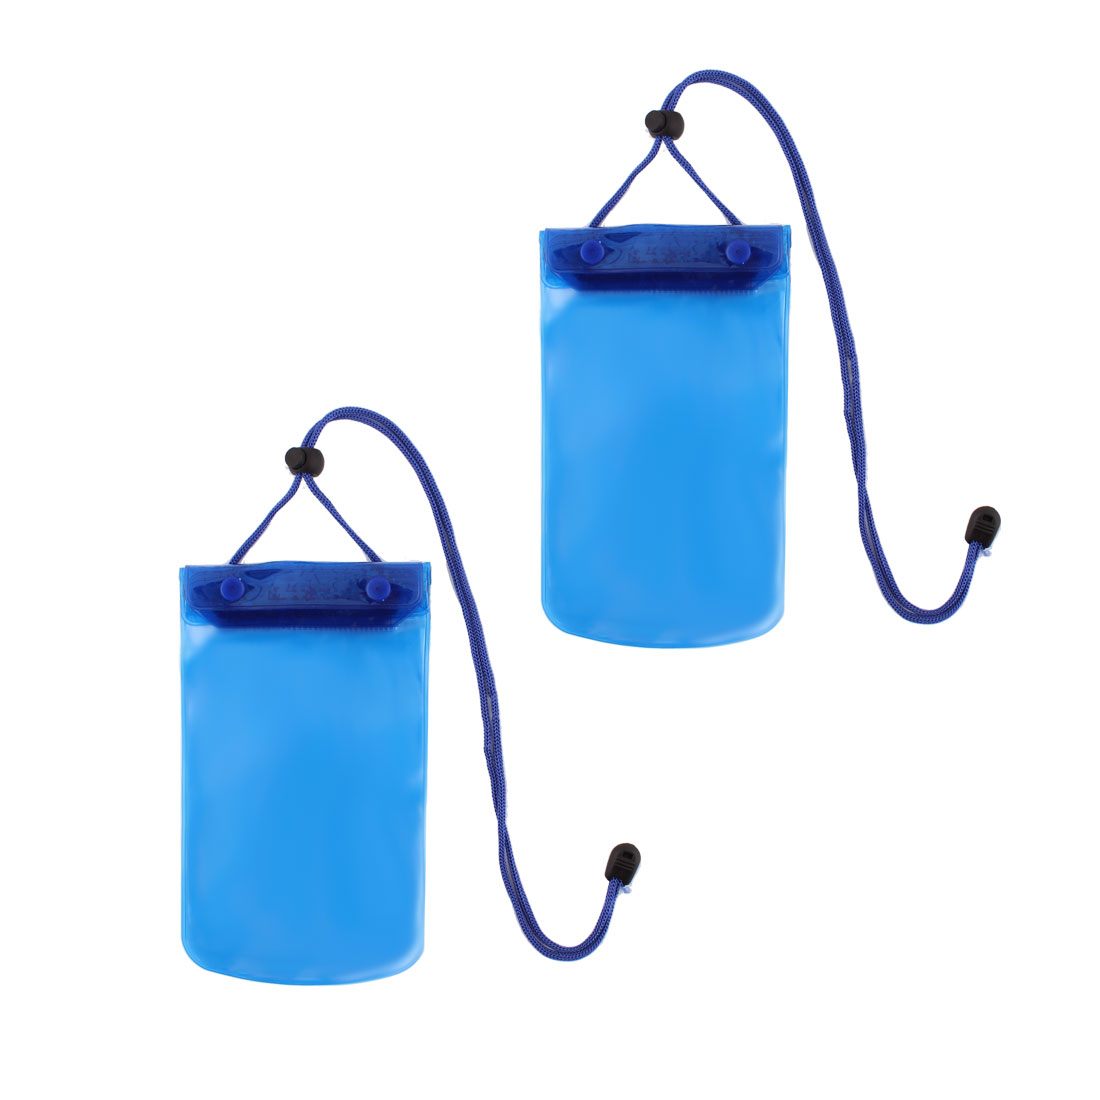 Outdoor Surfing Swimming Phone PVC Water Resistant Bag Holder Pouch Blue 2 Pcs